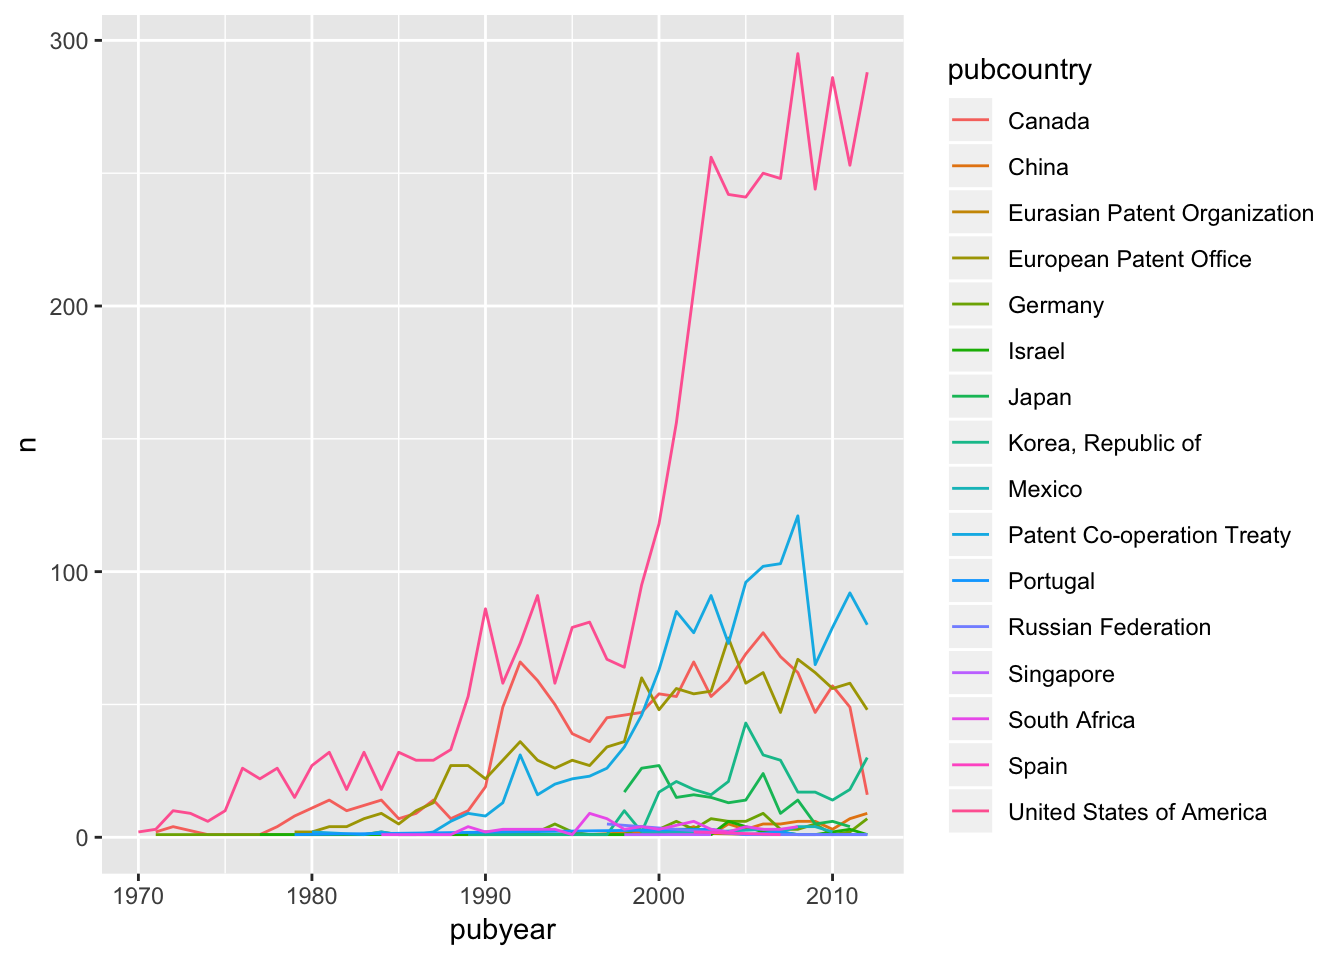 An Introduction to Plotly for Patent Analytics - Paul Oldham's